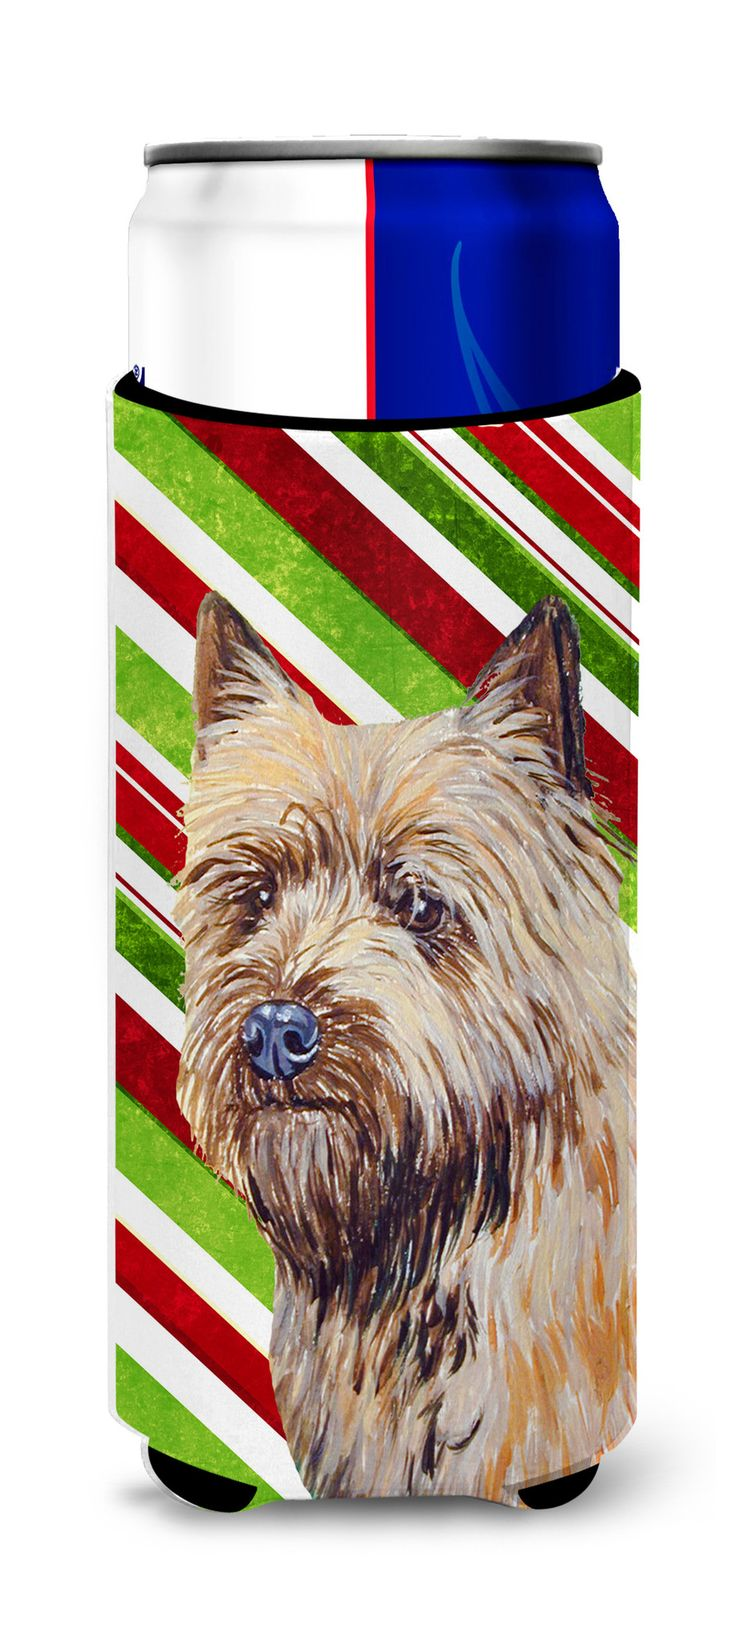 Cairn Terrier Candy Cane Holiday Christmas Ultra Beverage Insulators for slim cans LH9230MUK